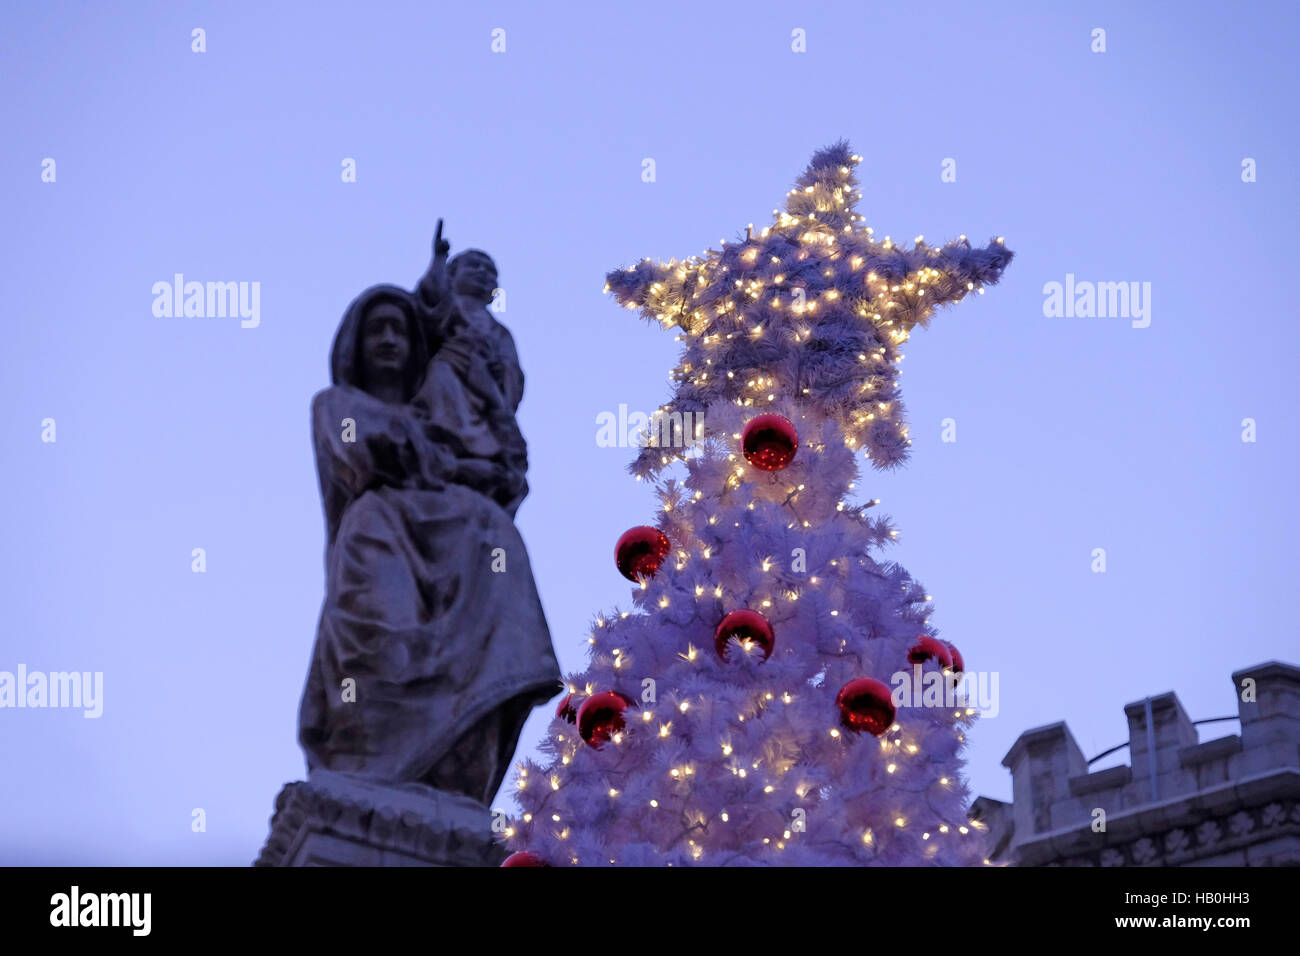 Christmas Tree In Front Notre Dame Stock Photos & Christmas Tree In ...